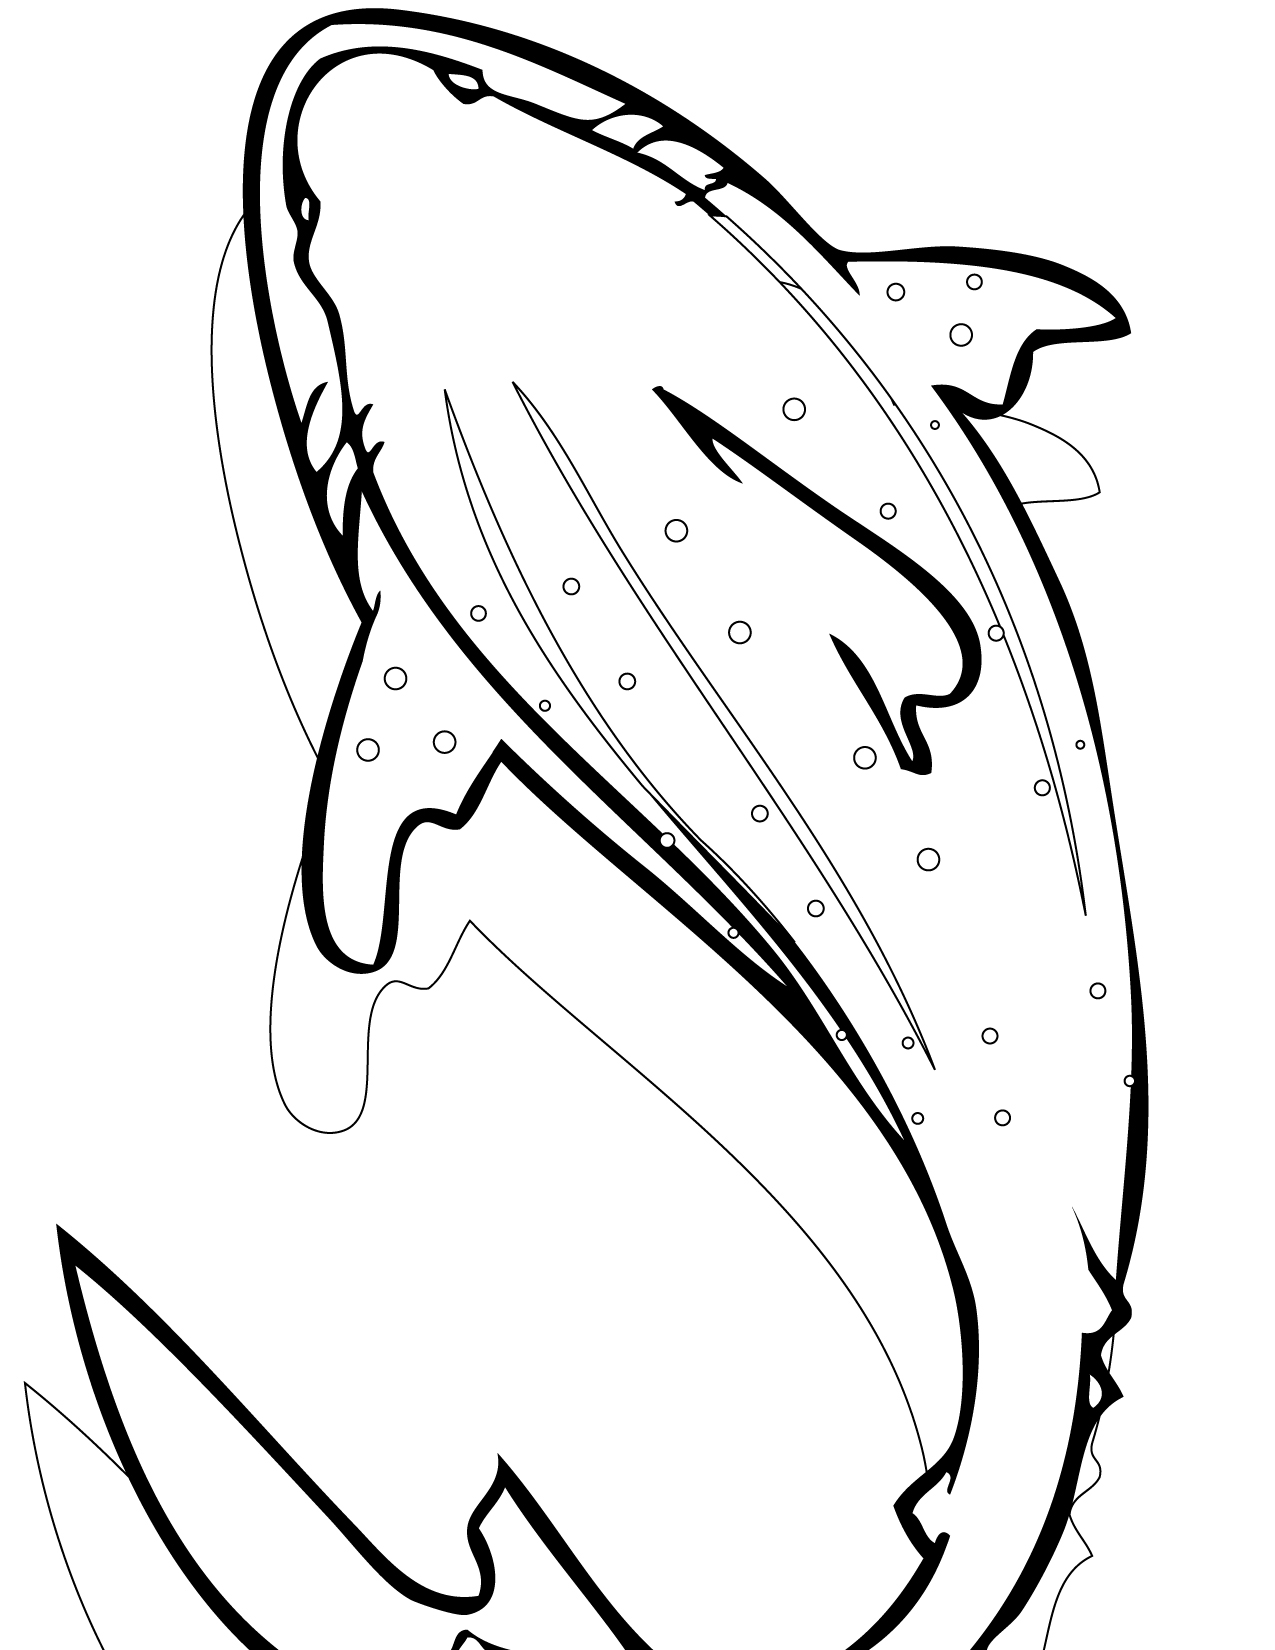 Sharkwhale clipart coloring #4